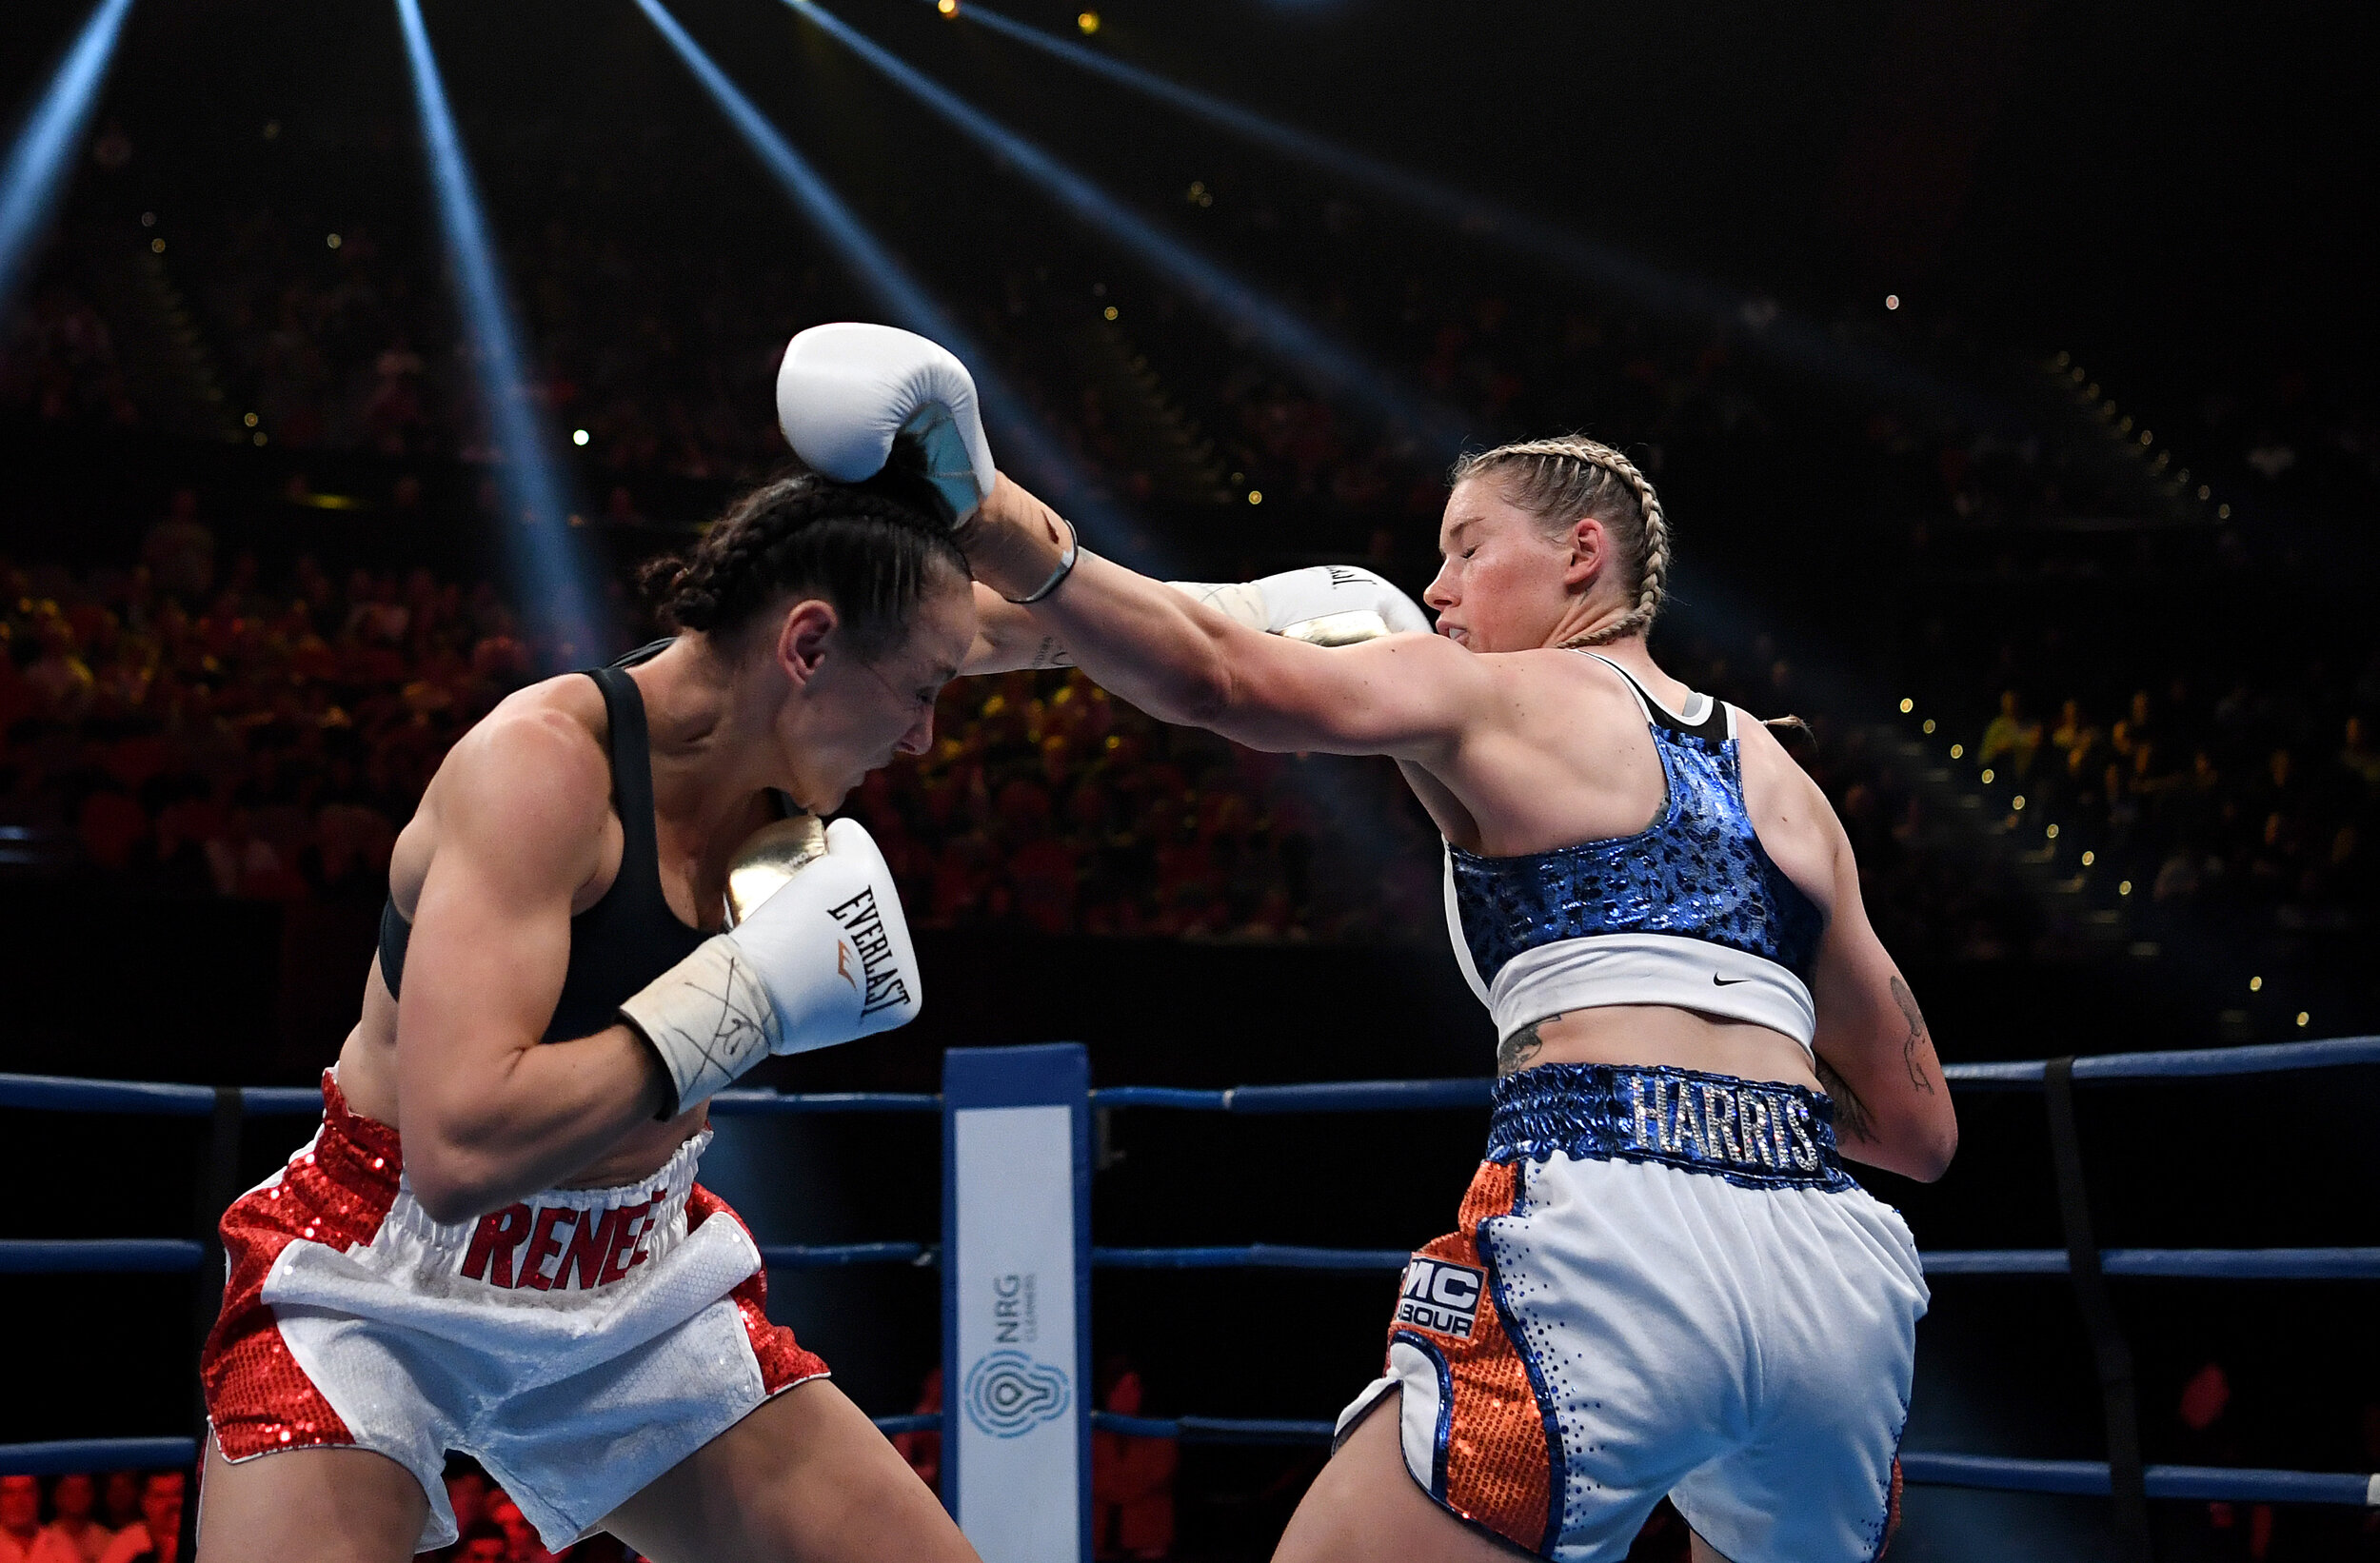 Tayla Harris v Renee Gartner  1GP_8731.jpg